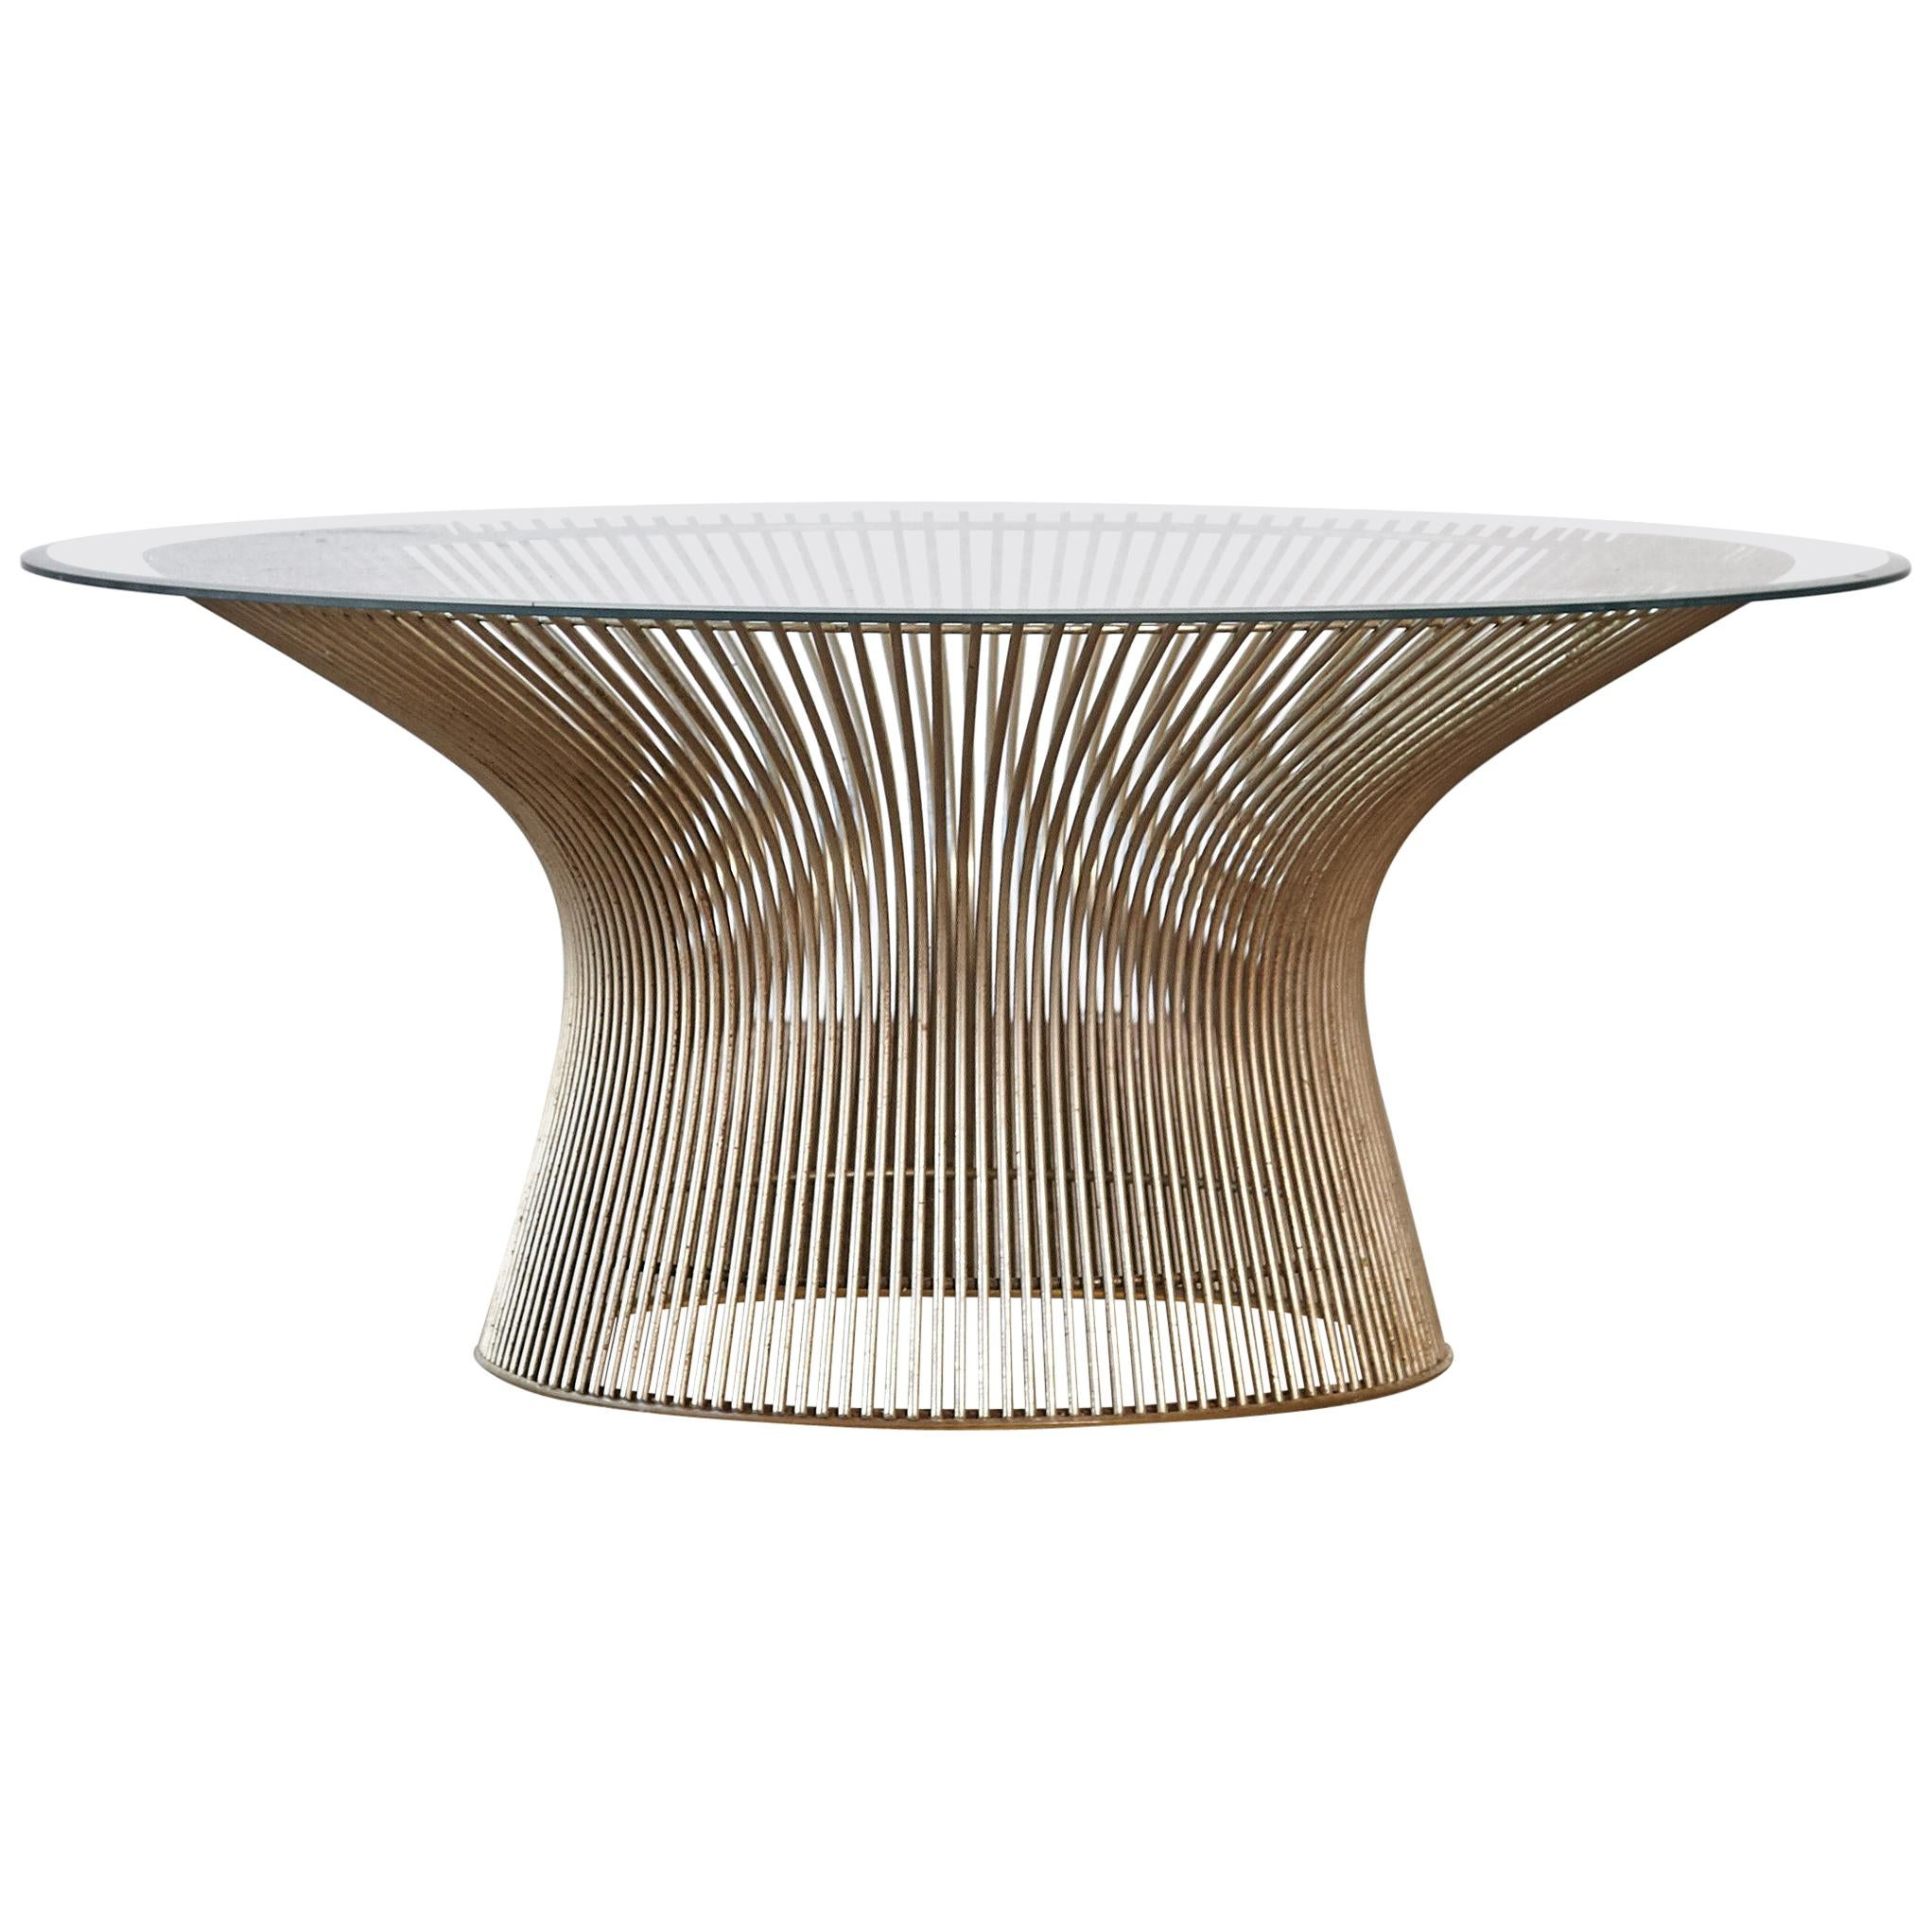 Warren Platner for Knoll Coffee Table, USA, 1970s